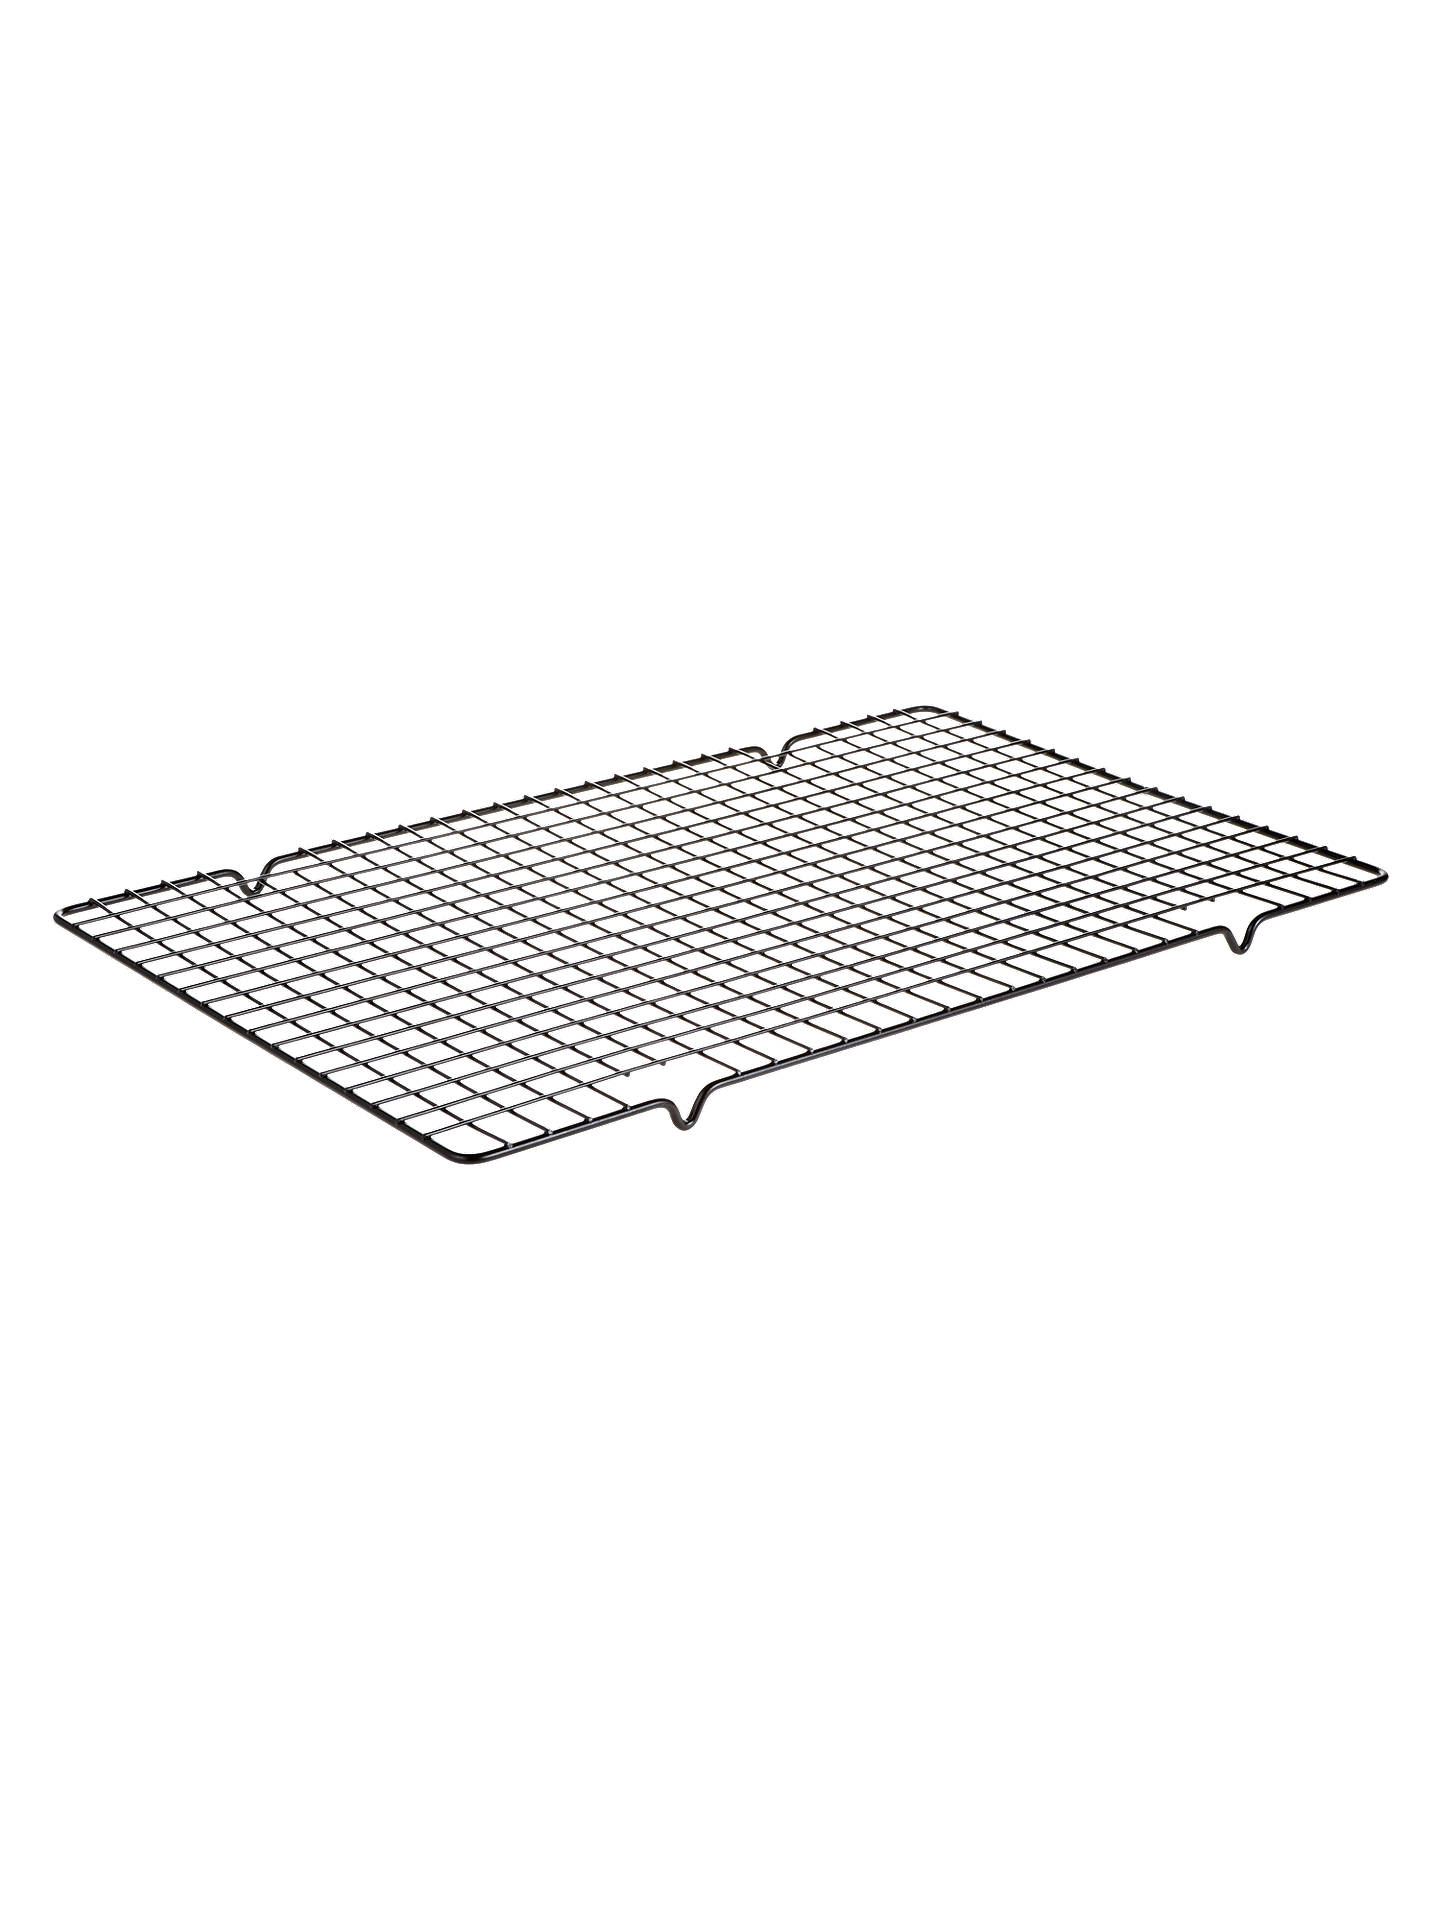 BuyJohn Lewis & Partners Nonstick Cooling Rack, L40 x W25cm Online at johnlewis.com